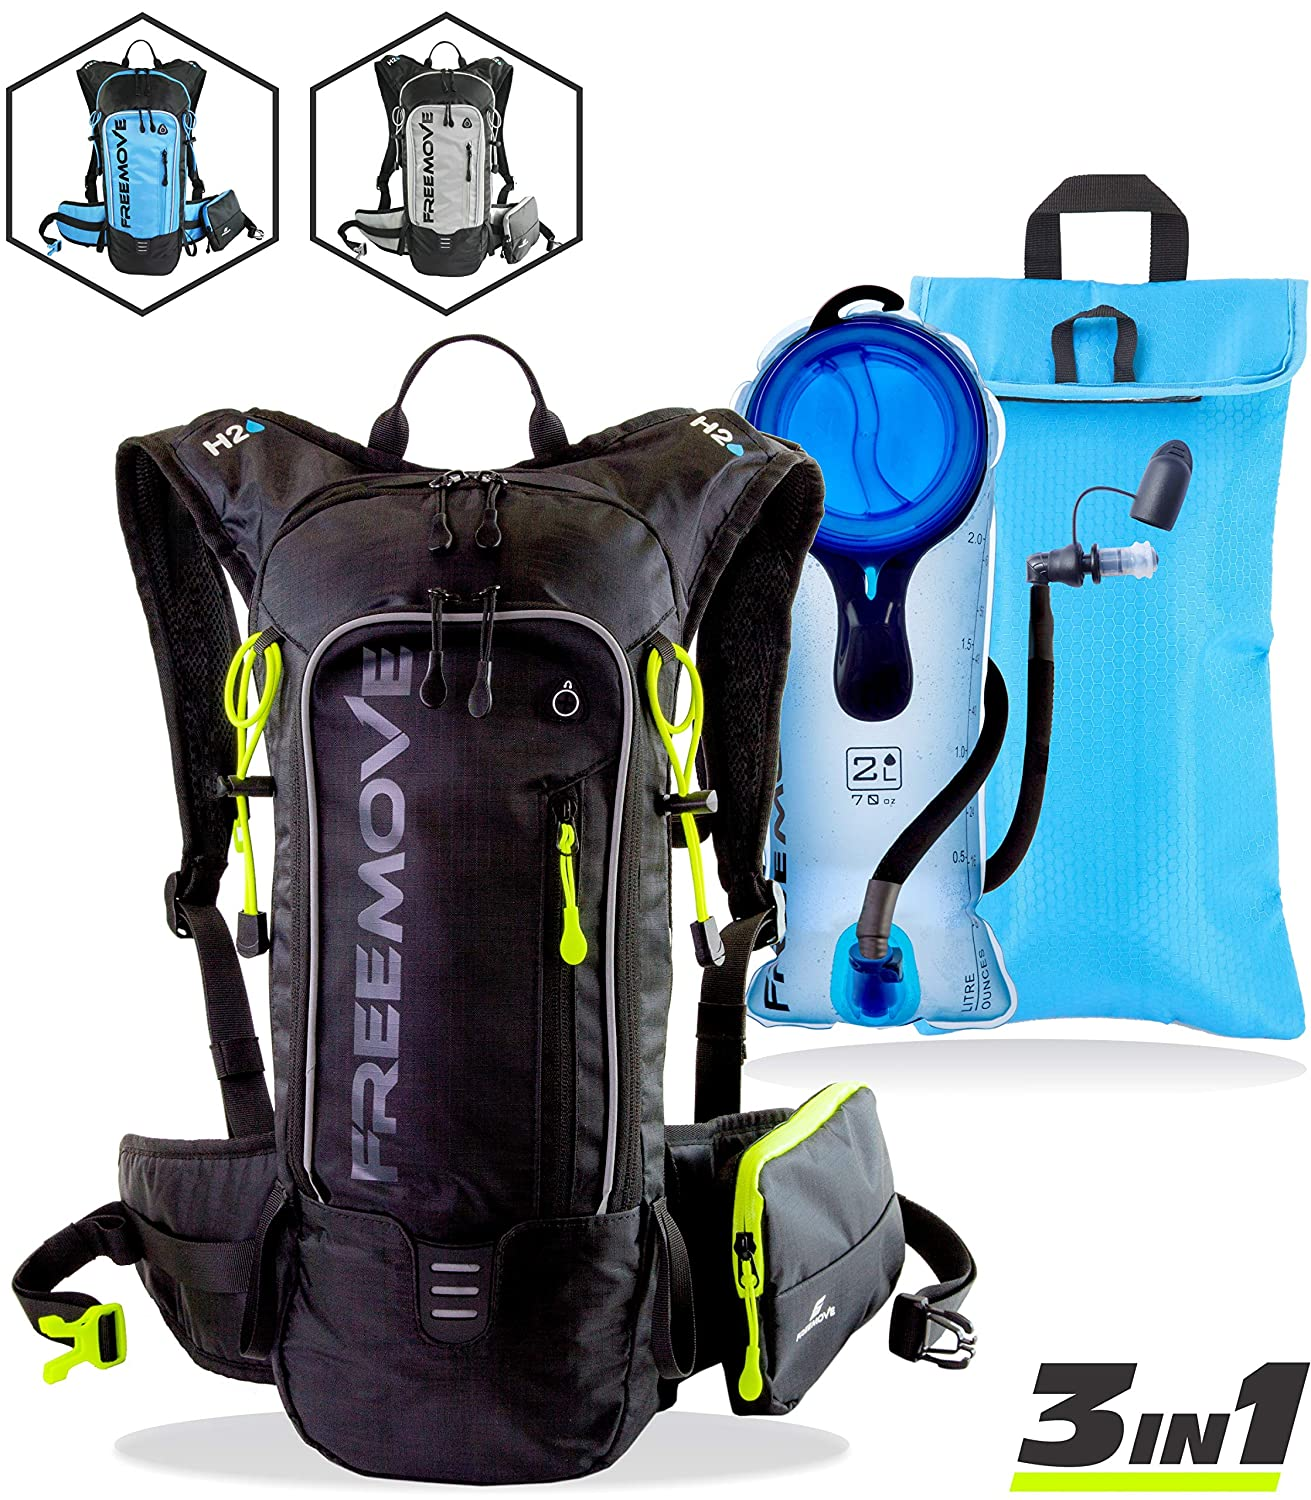 FREEMOVE Hydration Pack Backpack with 2L Water Bladder